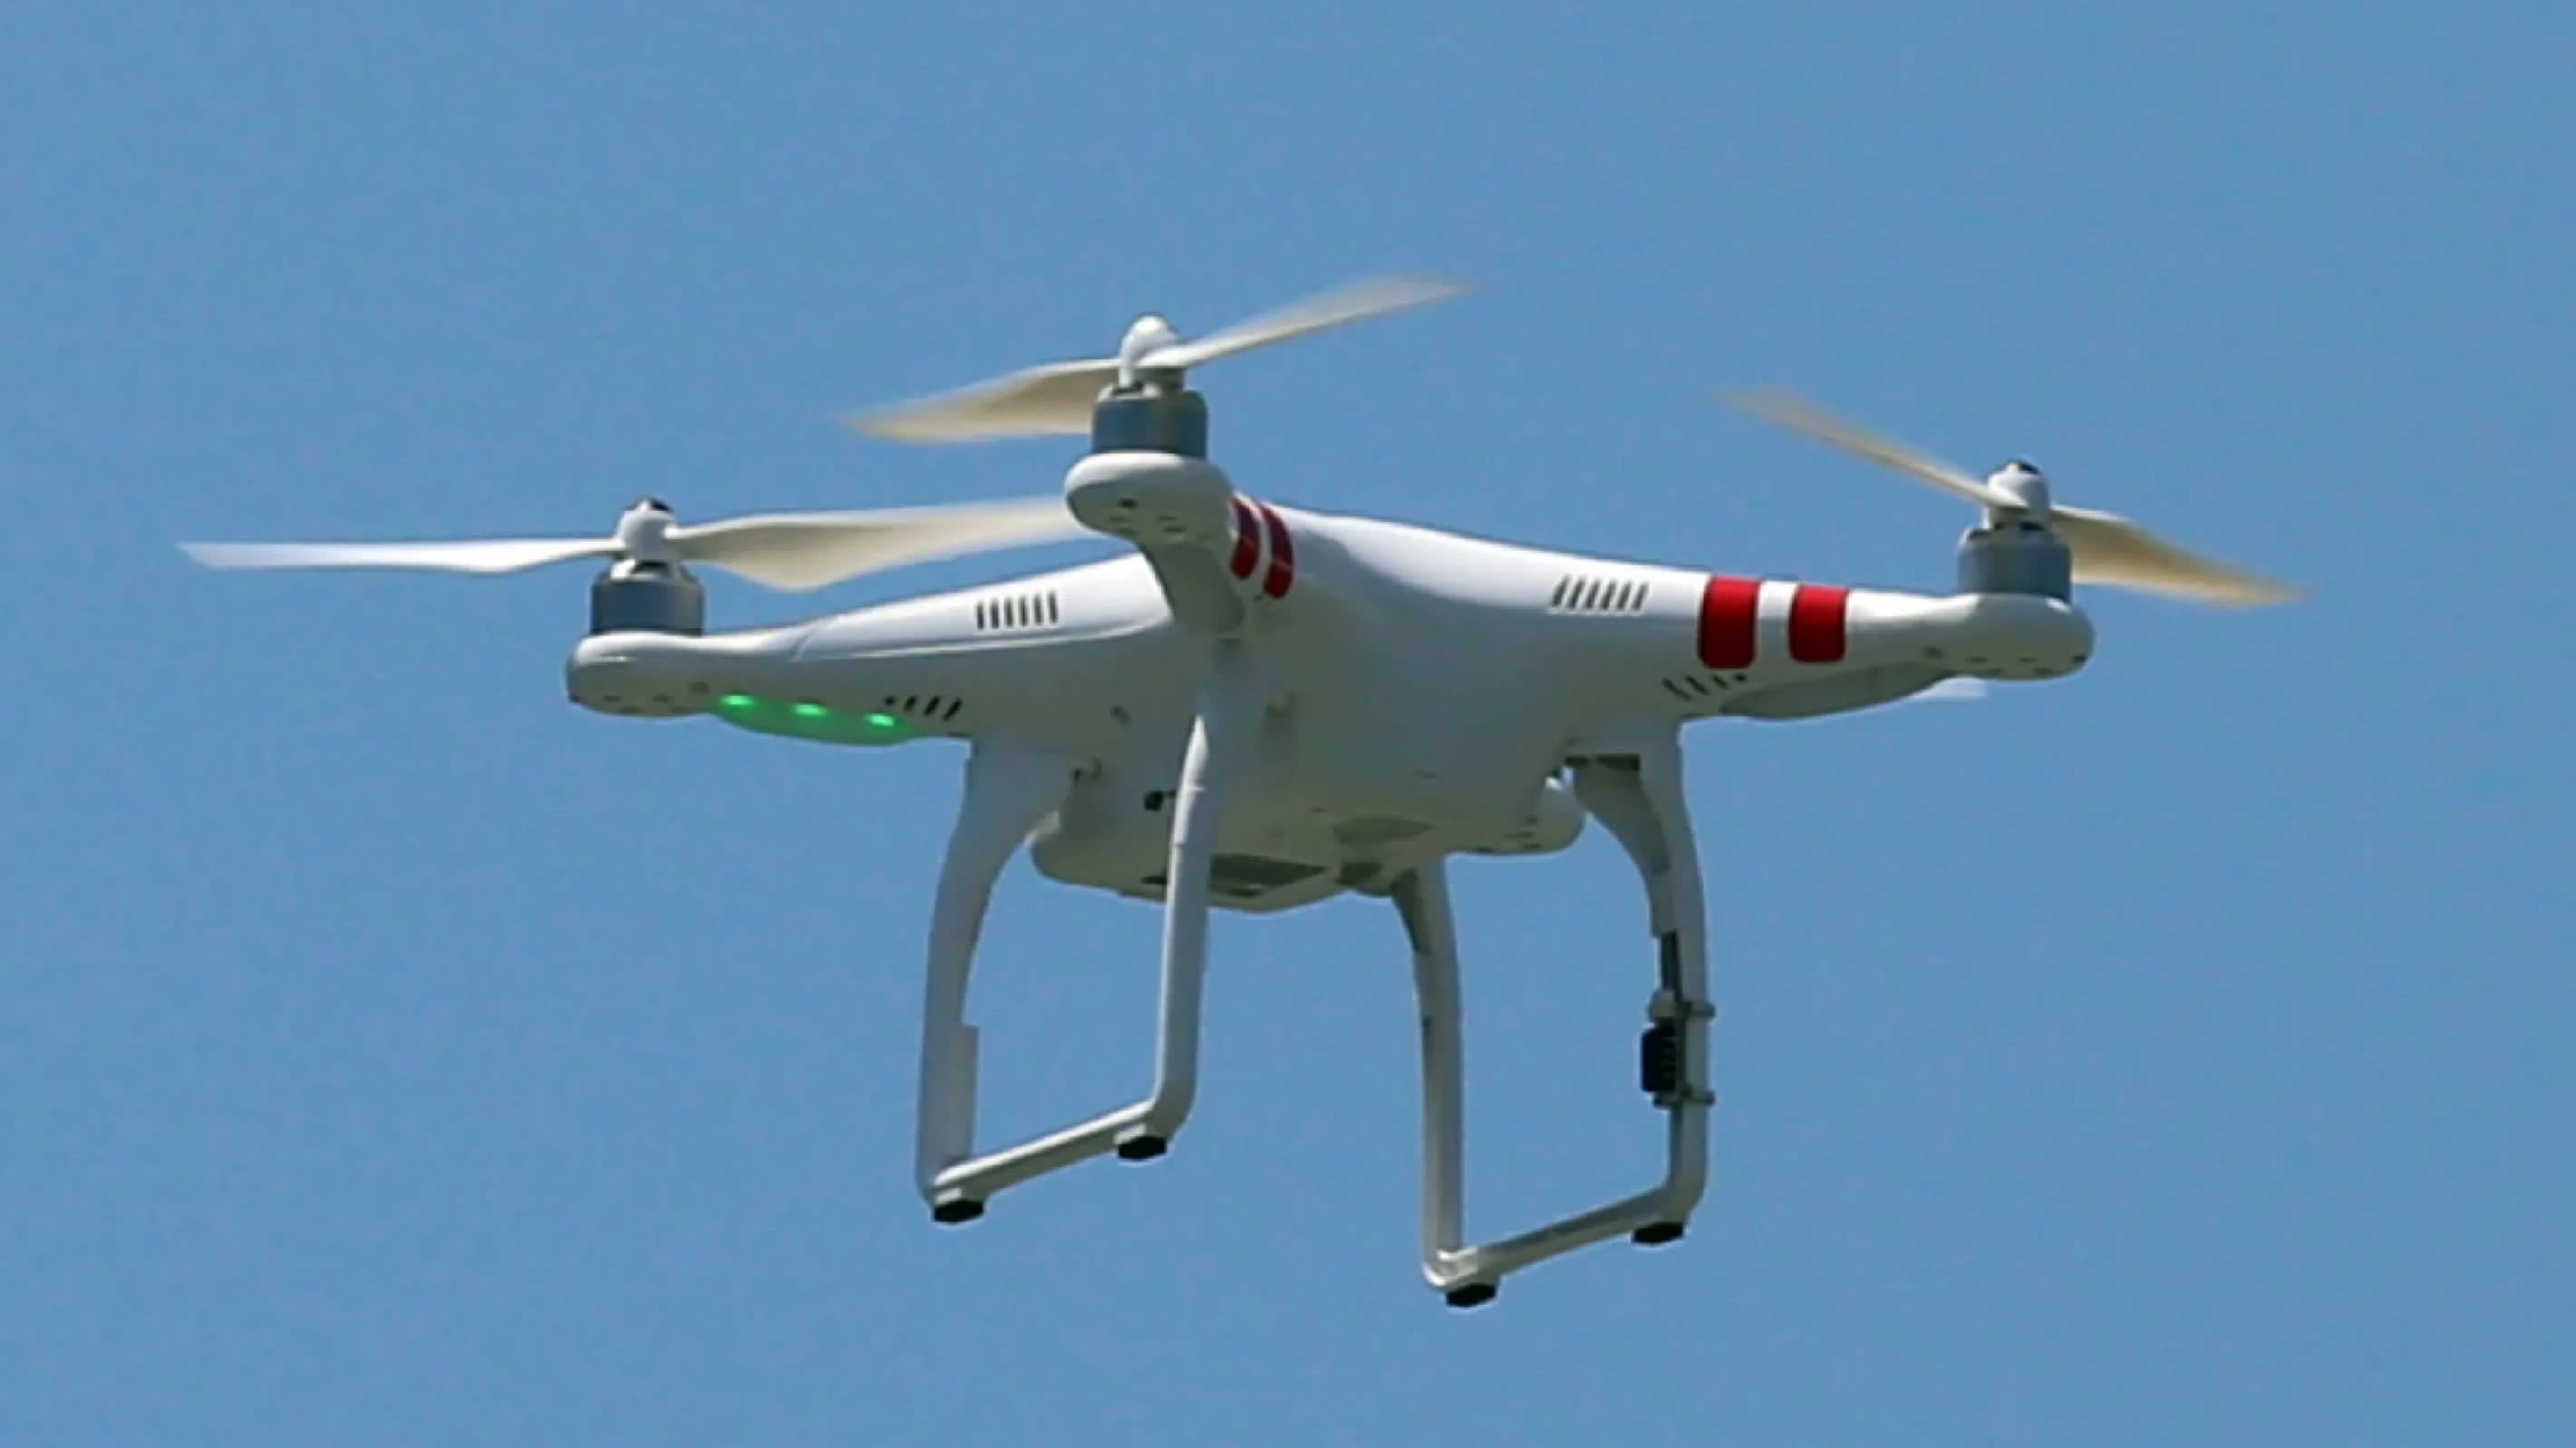 NCC reviews guidelines on spectrum deployment for drone usage